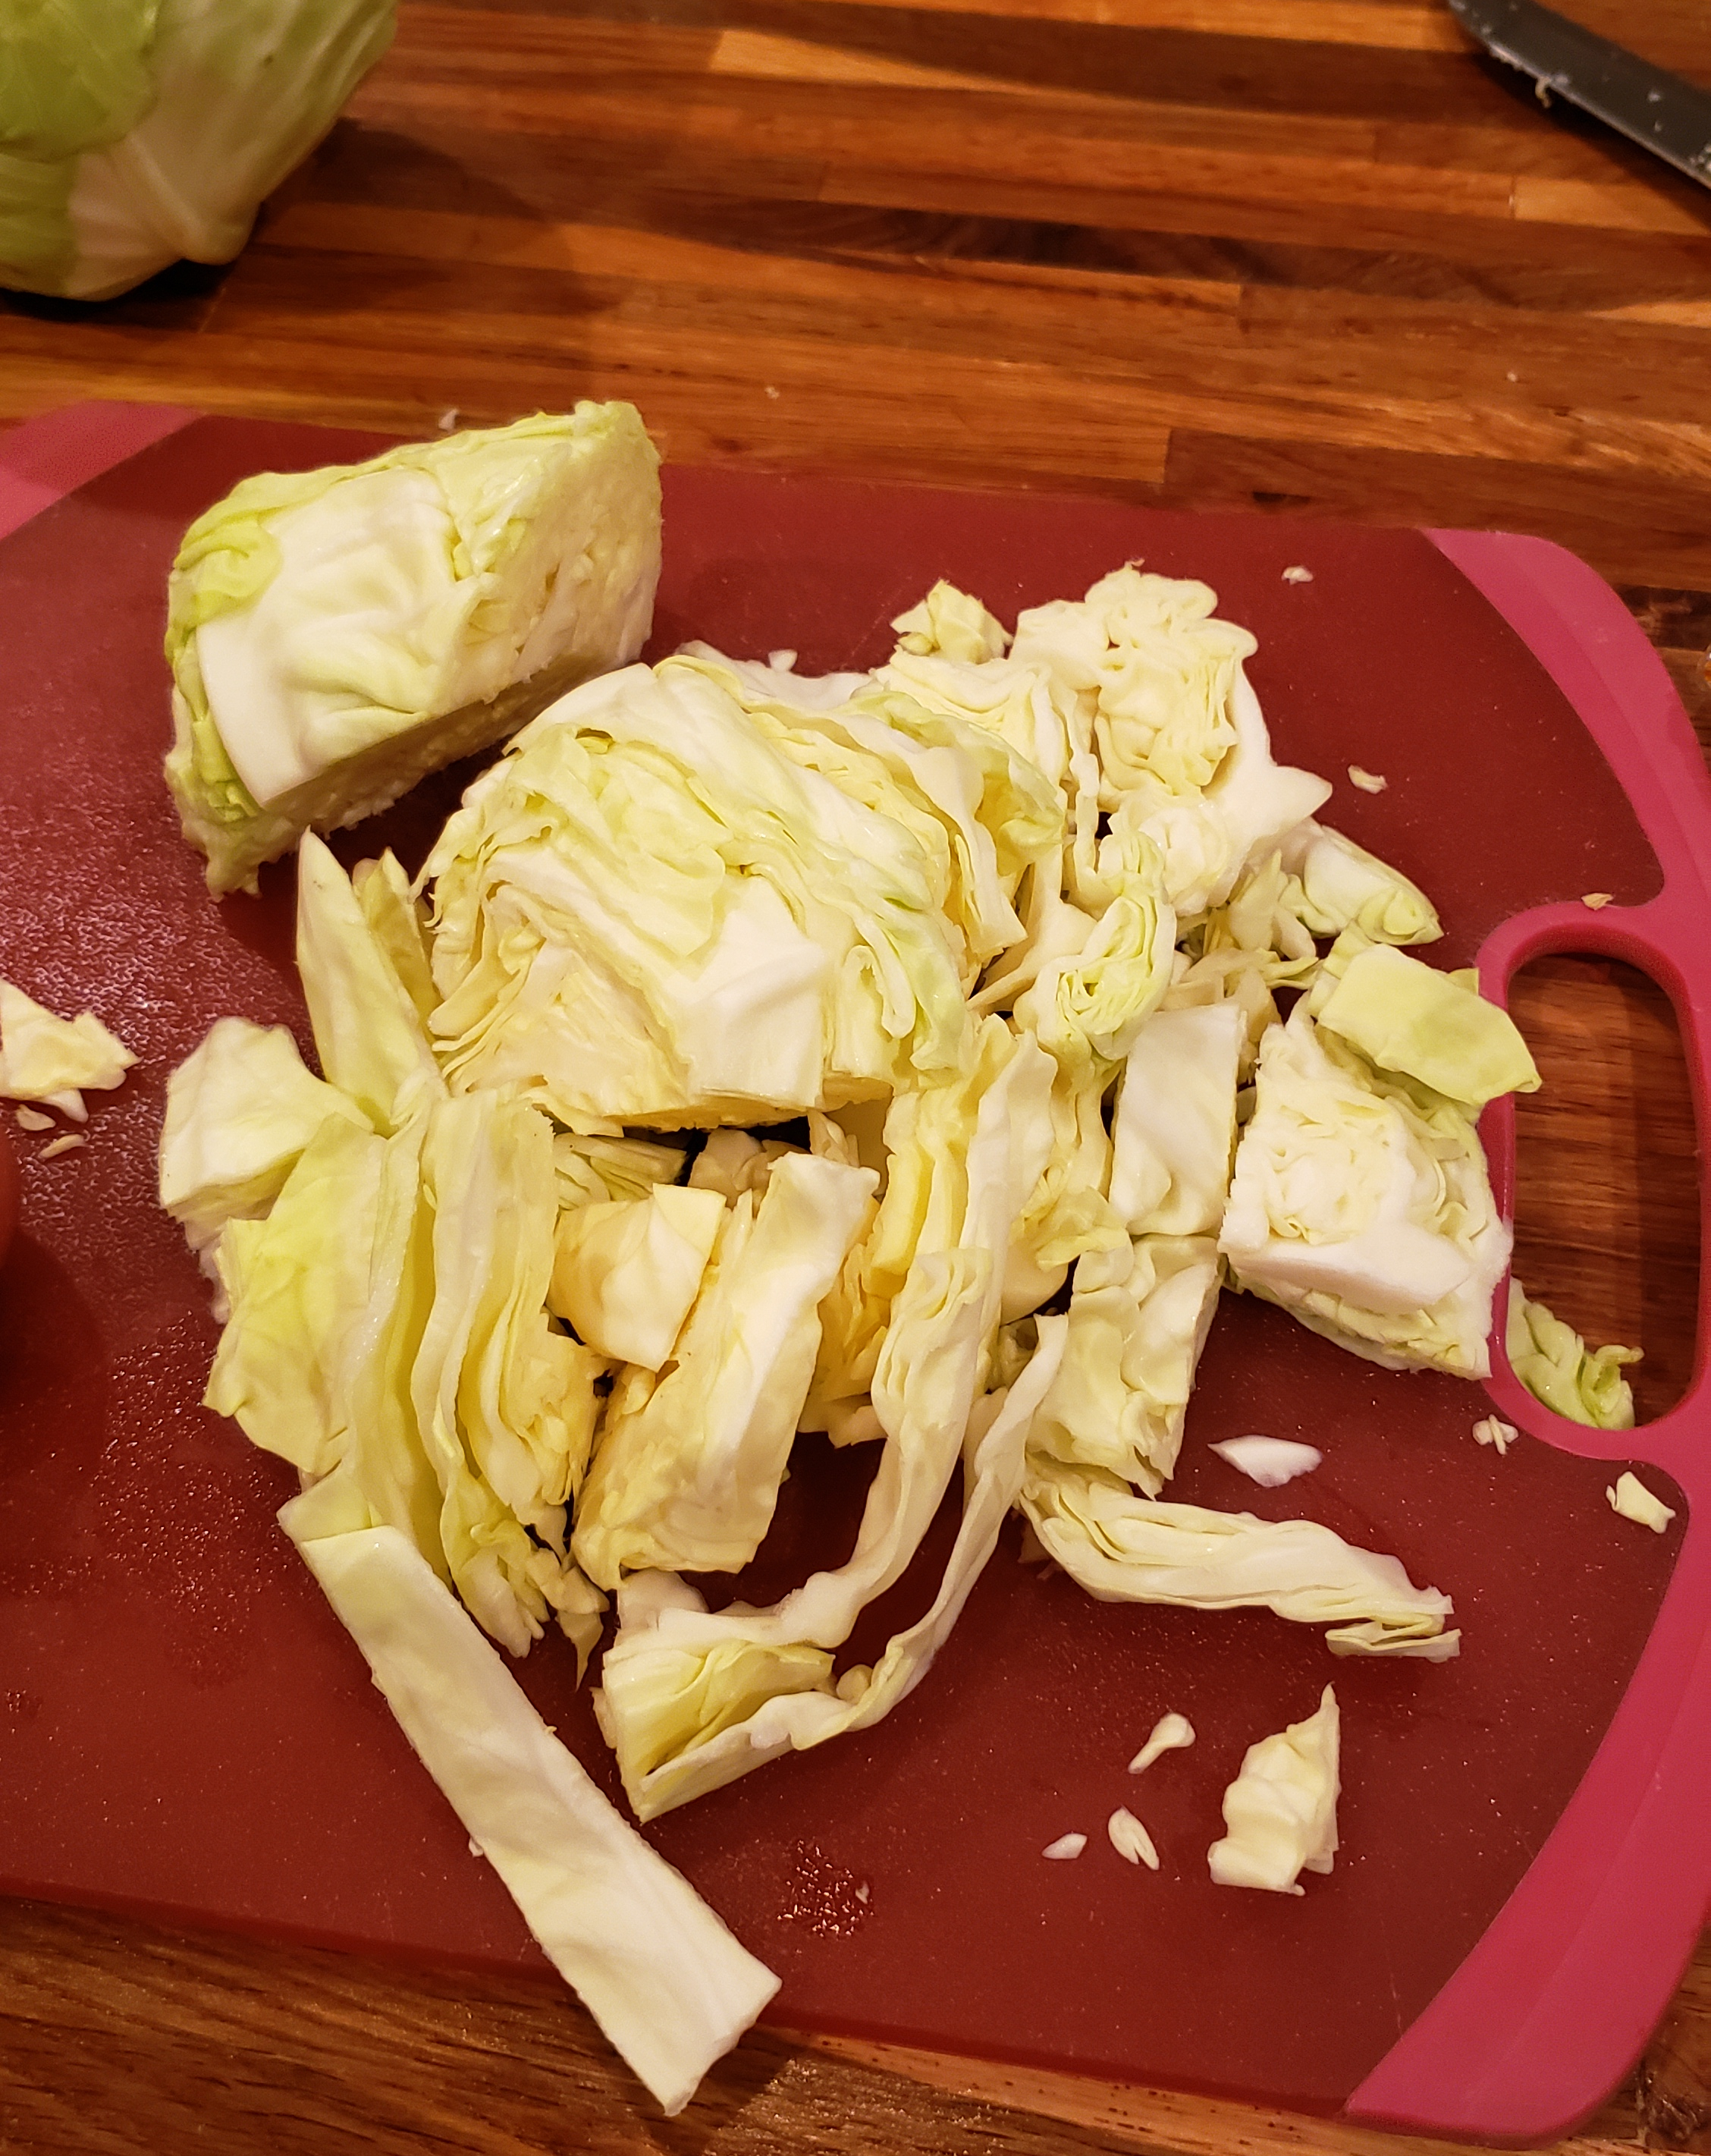 Thickly sliced cabbage on a cutting board.